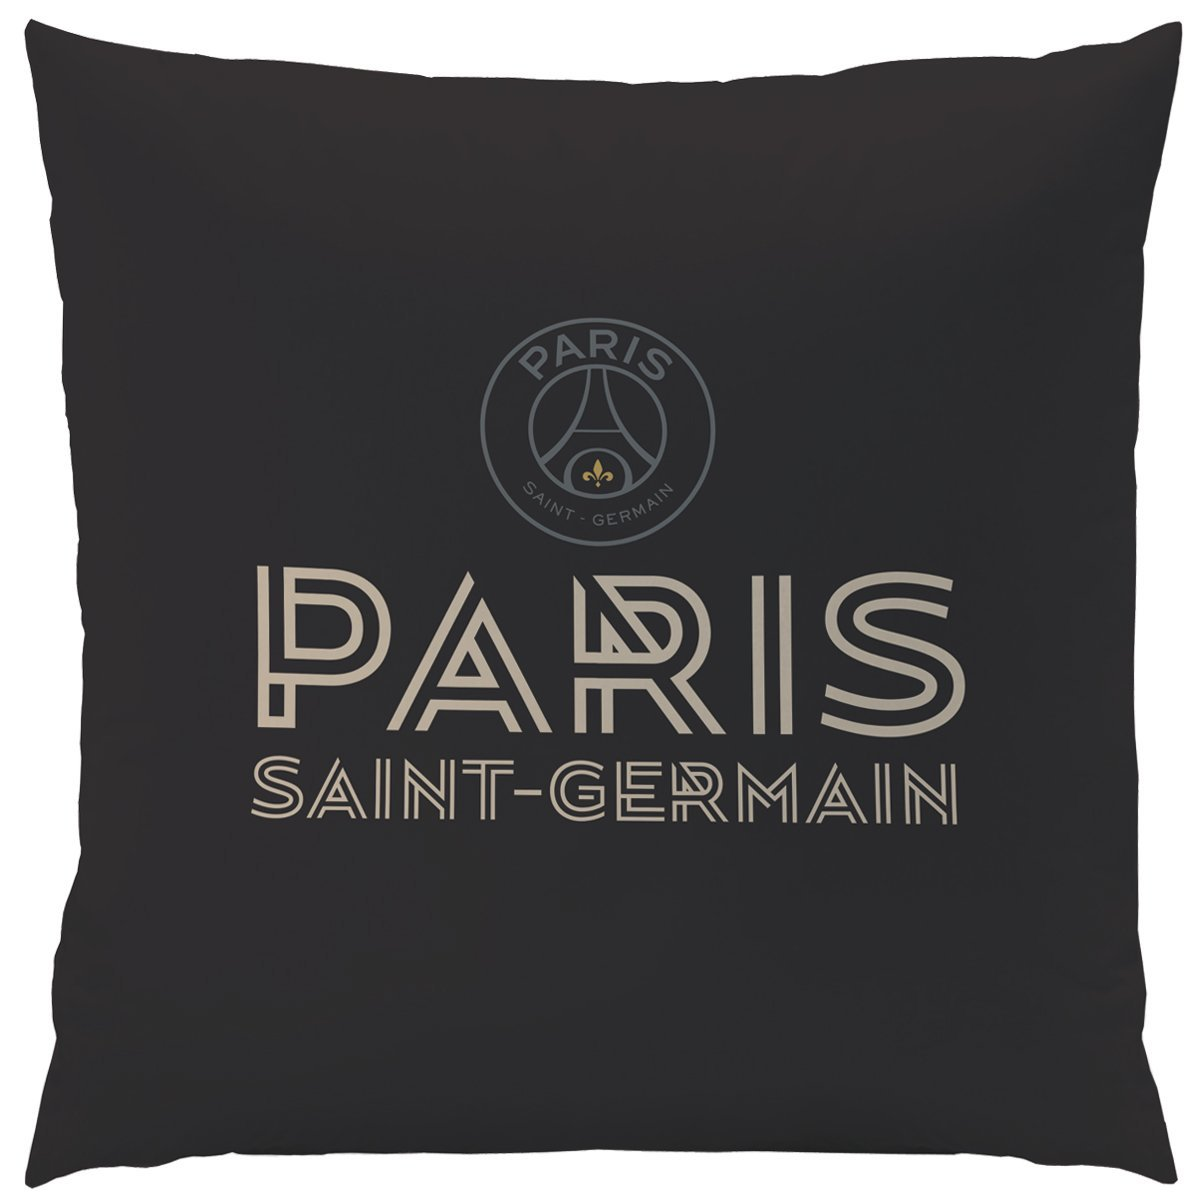 psg premium coussin 40 x 40 r f psg434433 psg paris saint germain decokids tous leurs. Black Bedroom Furniture Sets. Home Design Ideas